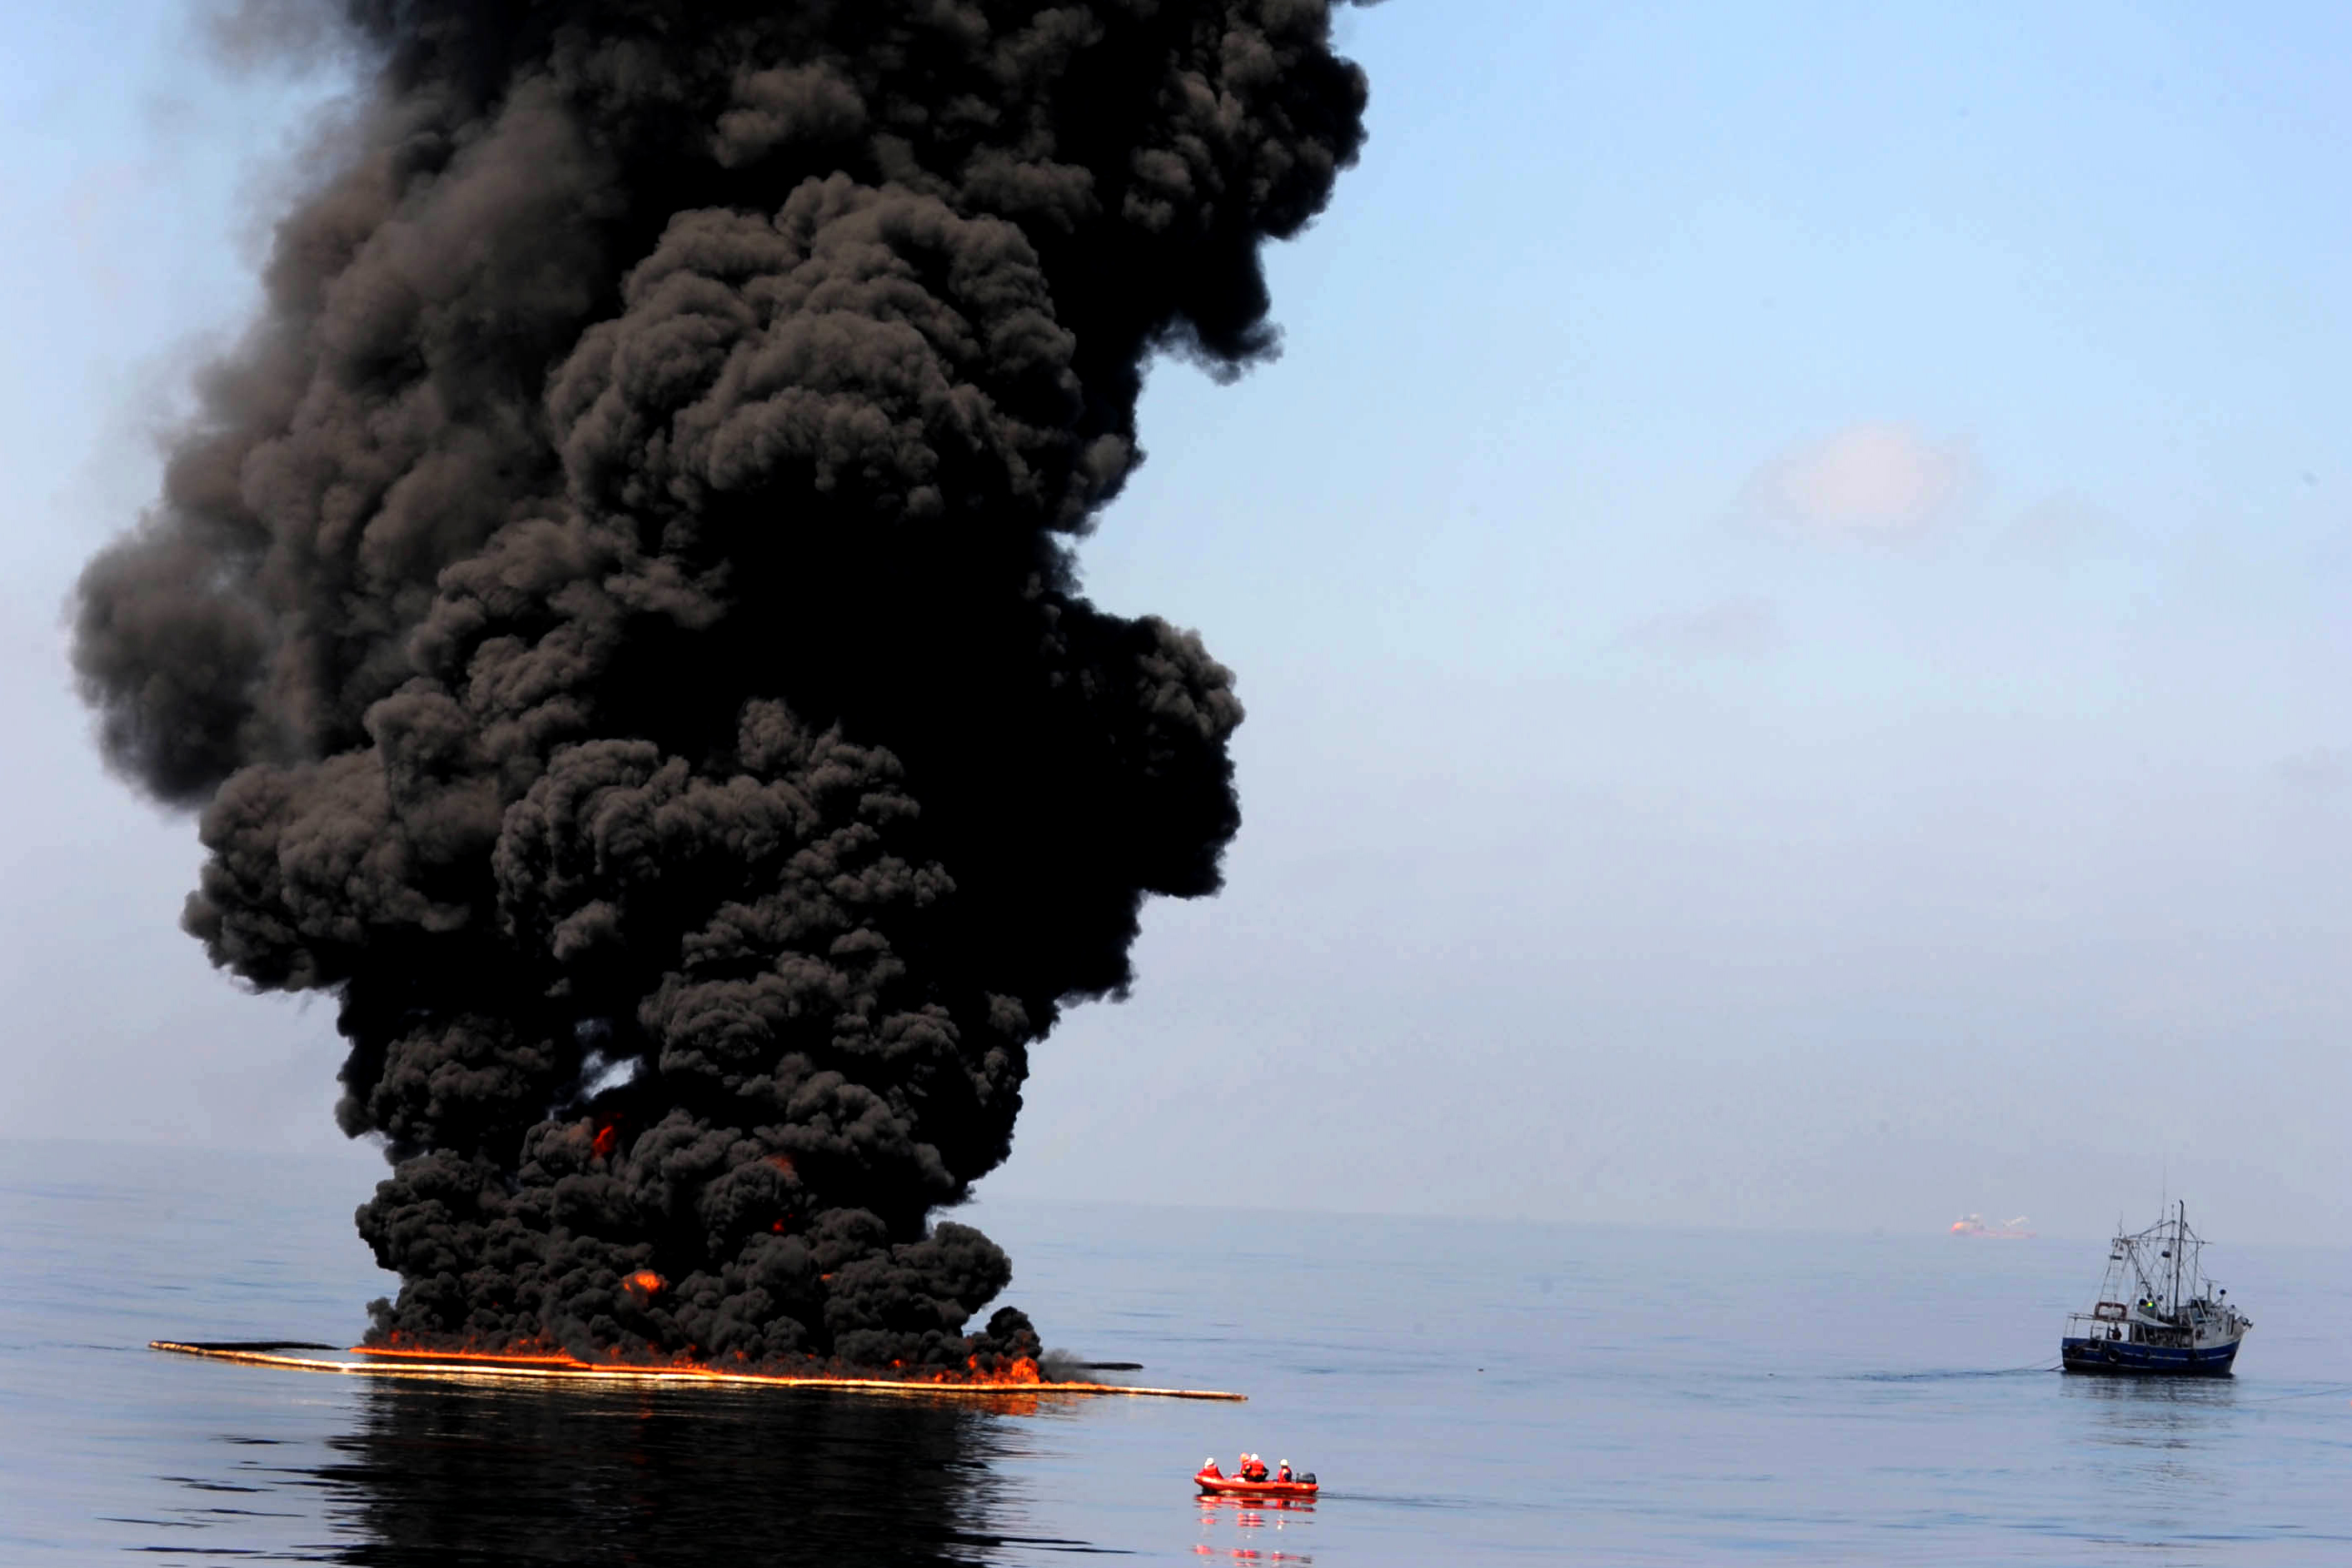 """bp oil spill essay British petroleum """"bp"""" oil spill on april 20th 2010, british petroleum better known as bp had an extremely destructive impact on the environment and the livelihood of those in gulf coast area of louisiana, mississippi and florida."""